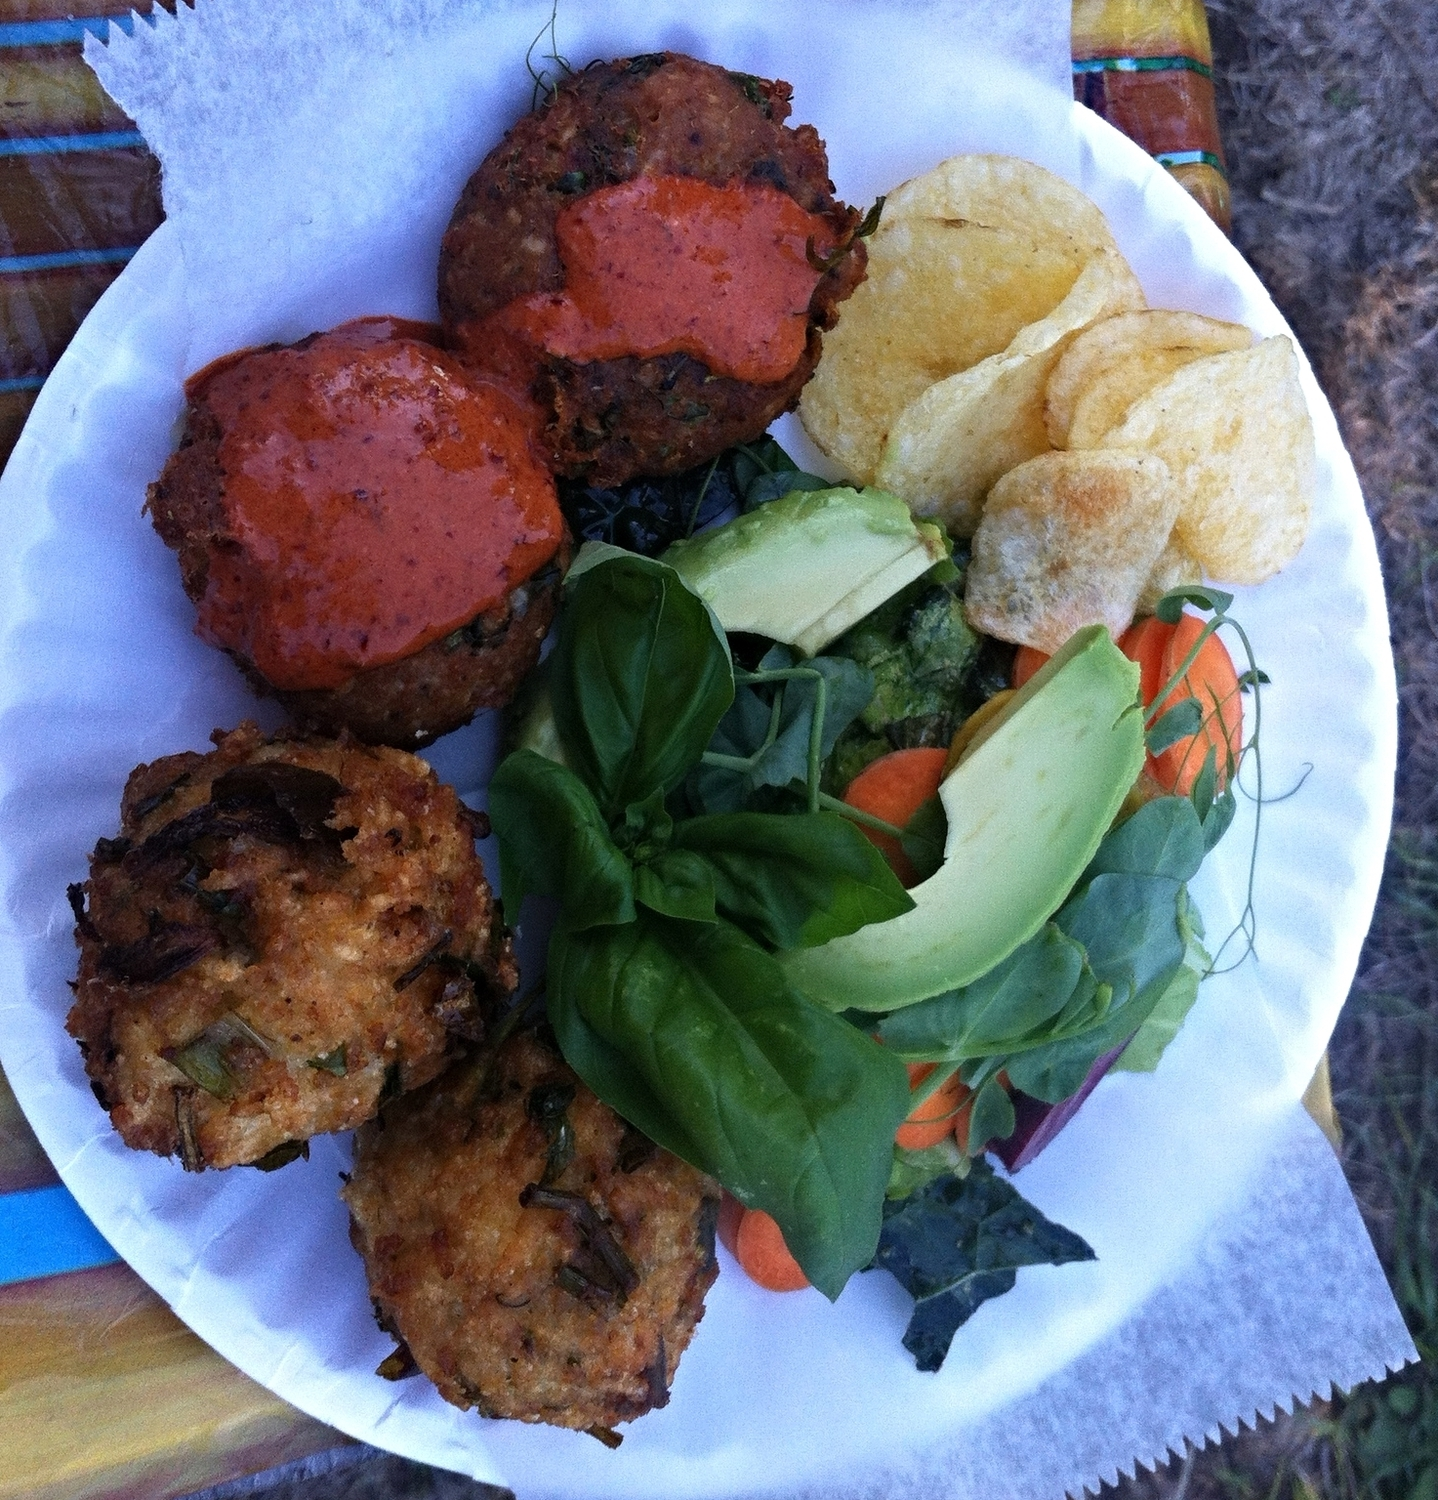 herb rice balls, salmon cakes with go chu jang yogurt, green salad and chips